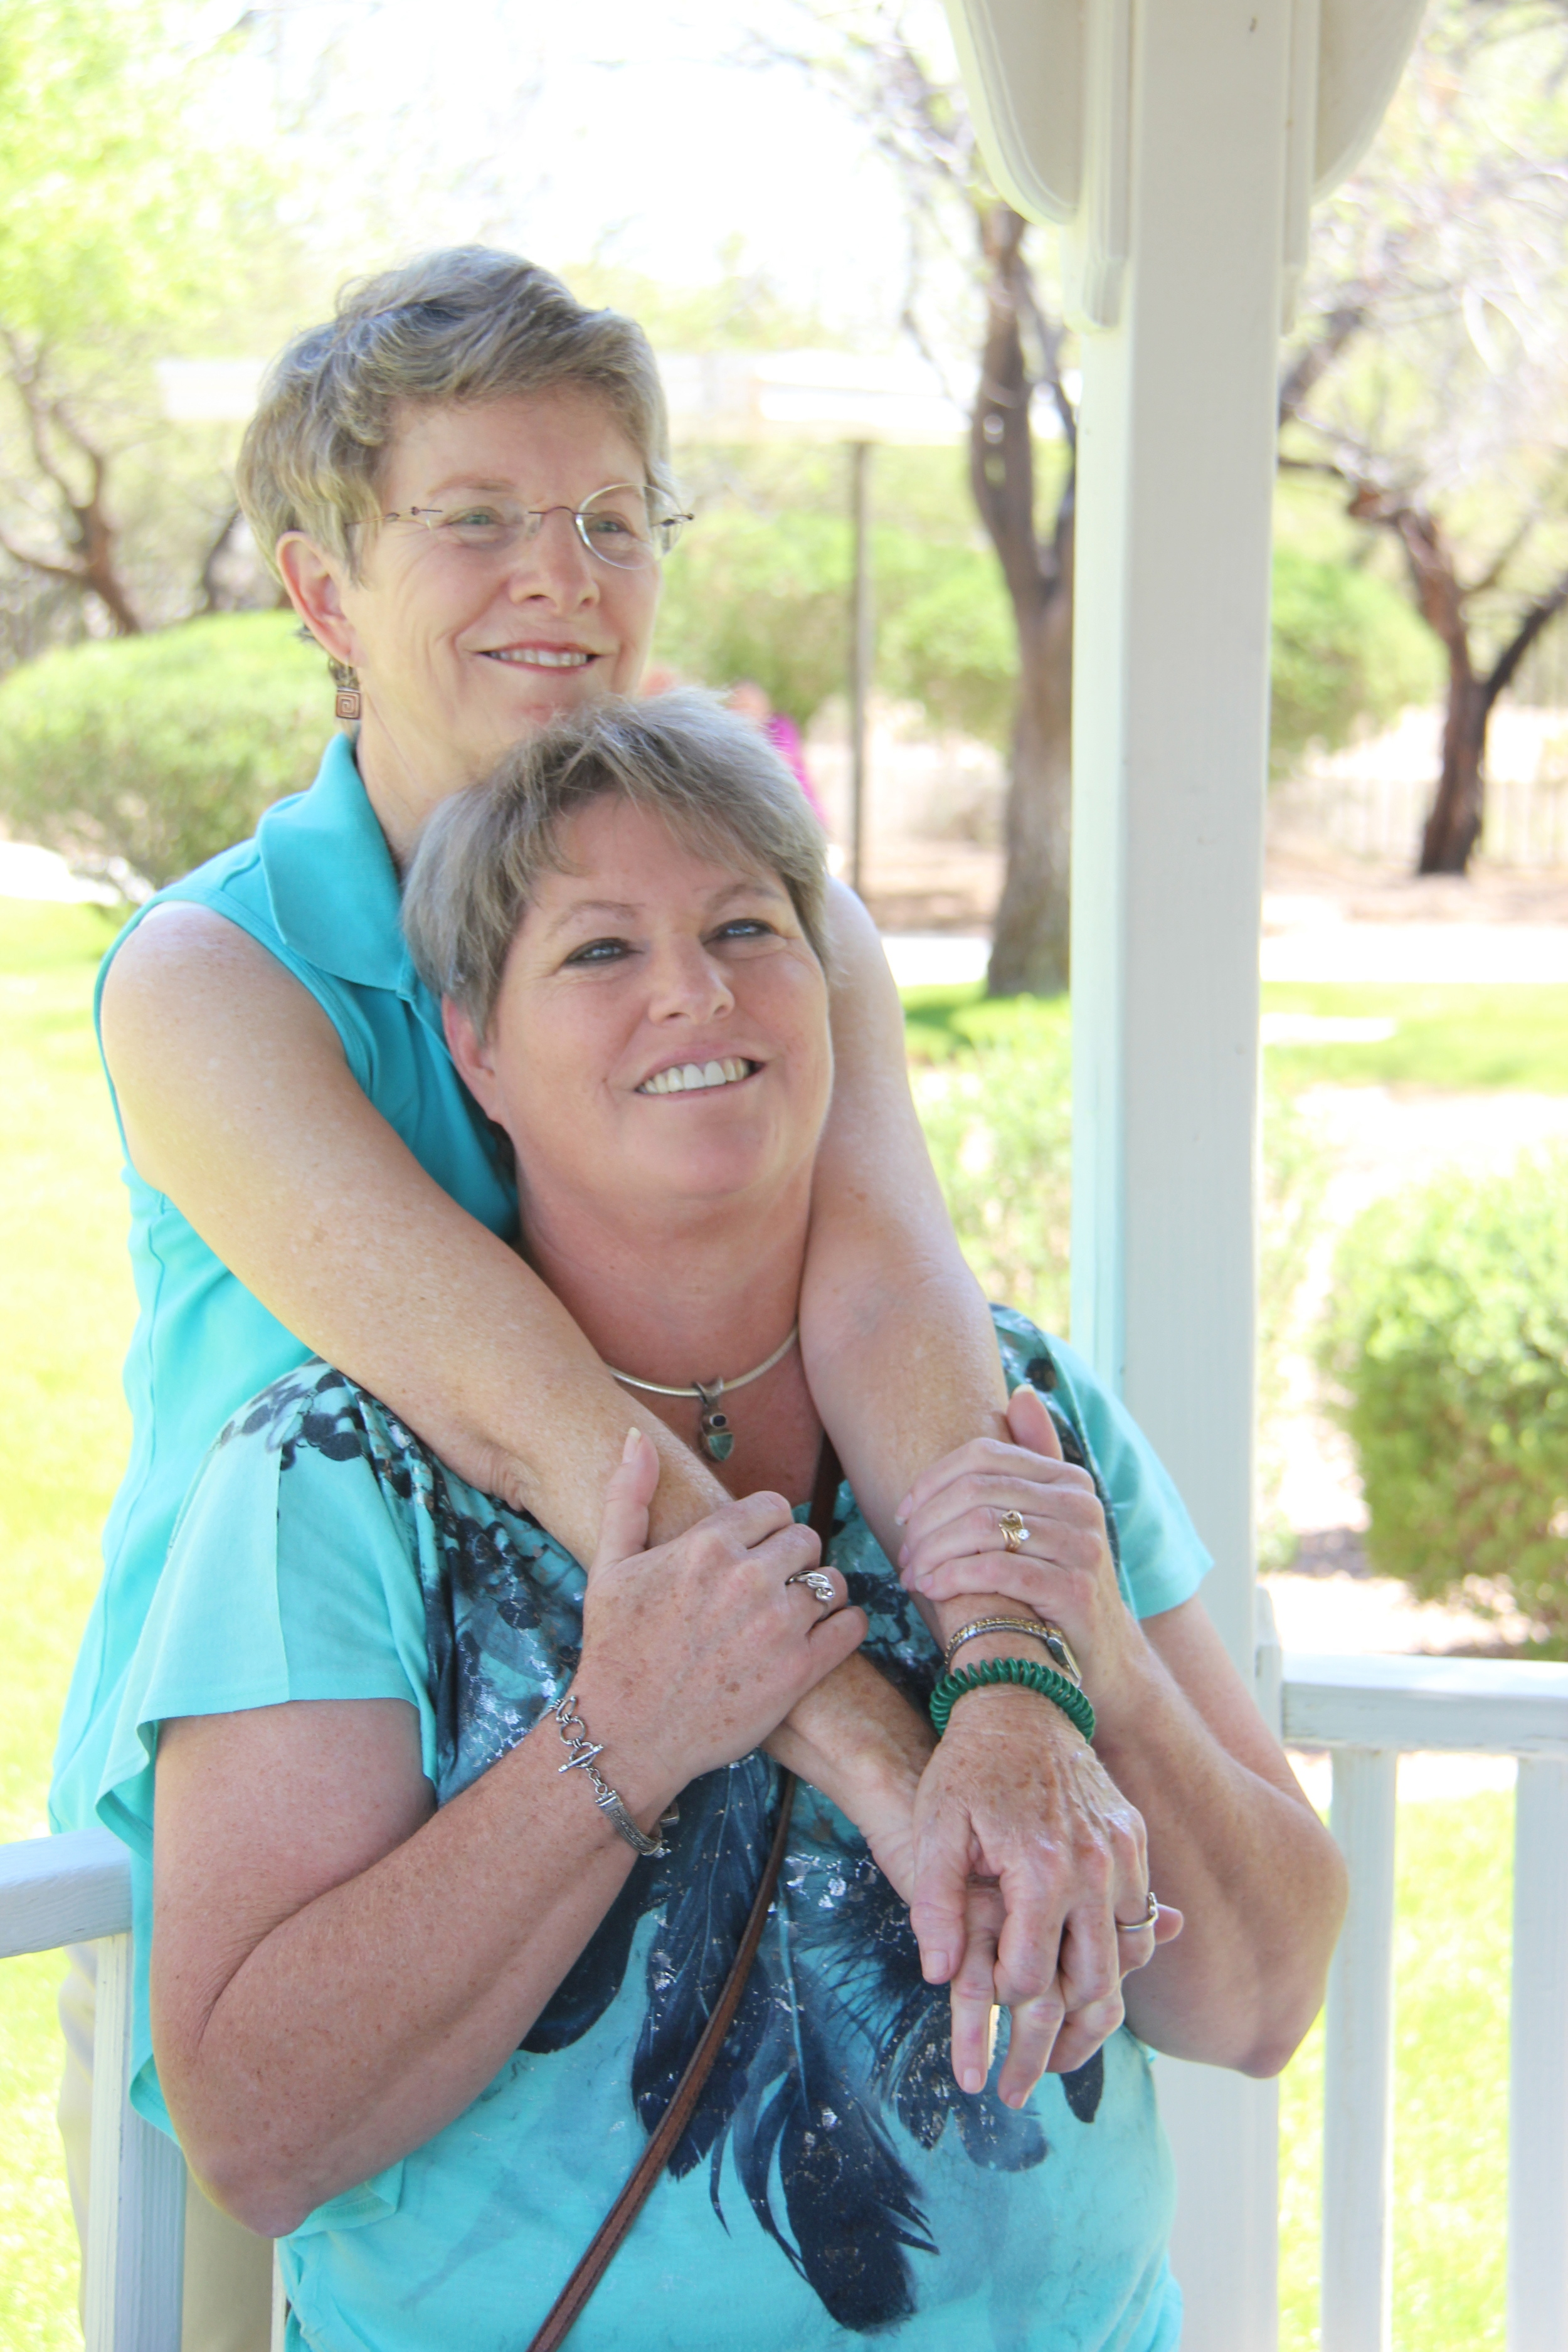 Cheryl and mother Mary Kay while visiting Beth at the senior living facility in Tucson, Ariz. © Nigar Fatali